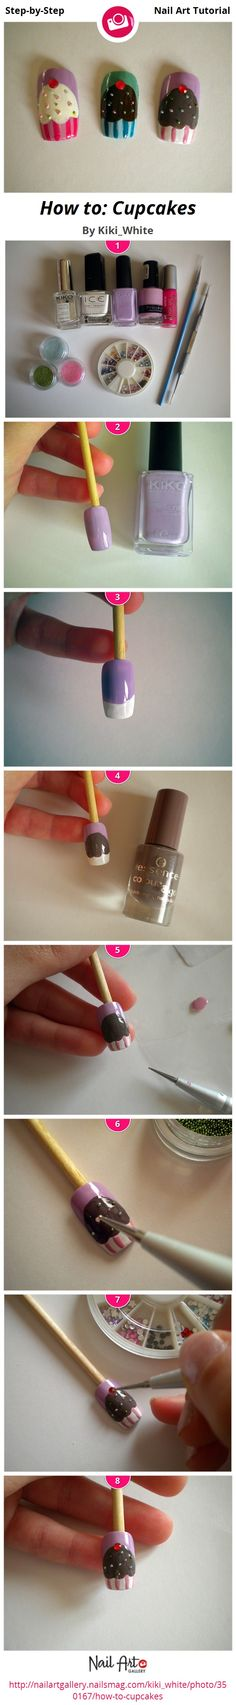 How to: Cupcakes by Kiki_White from Nail Art Gallery